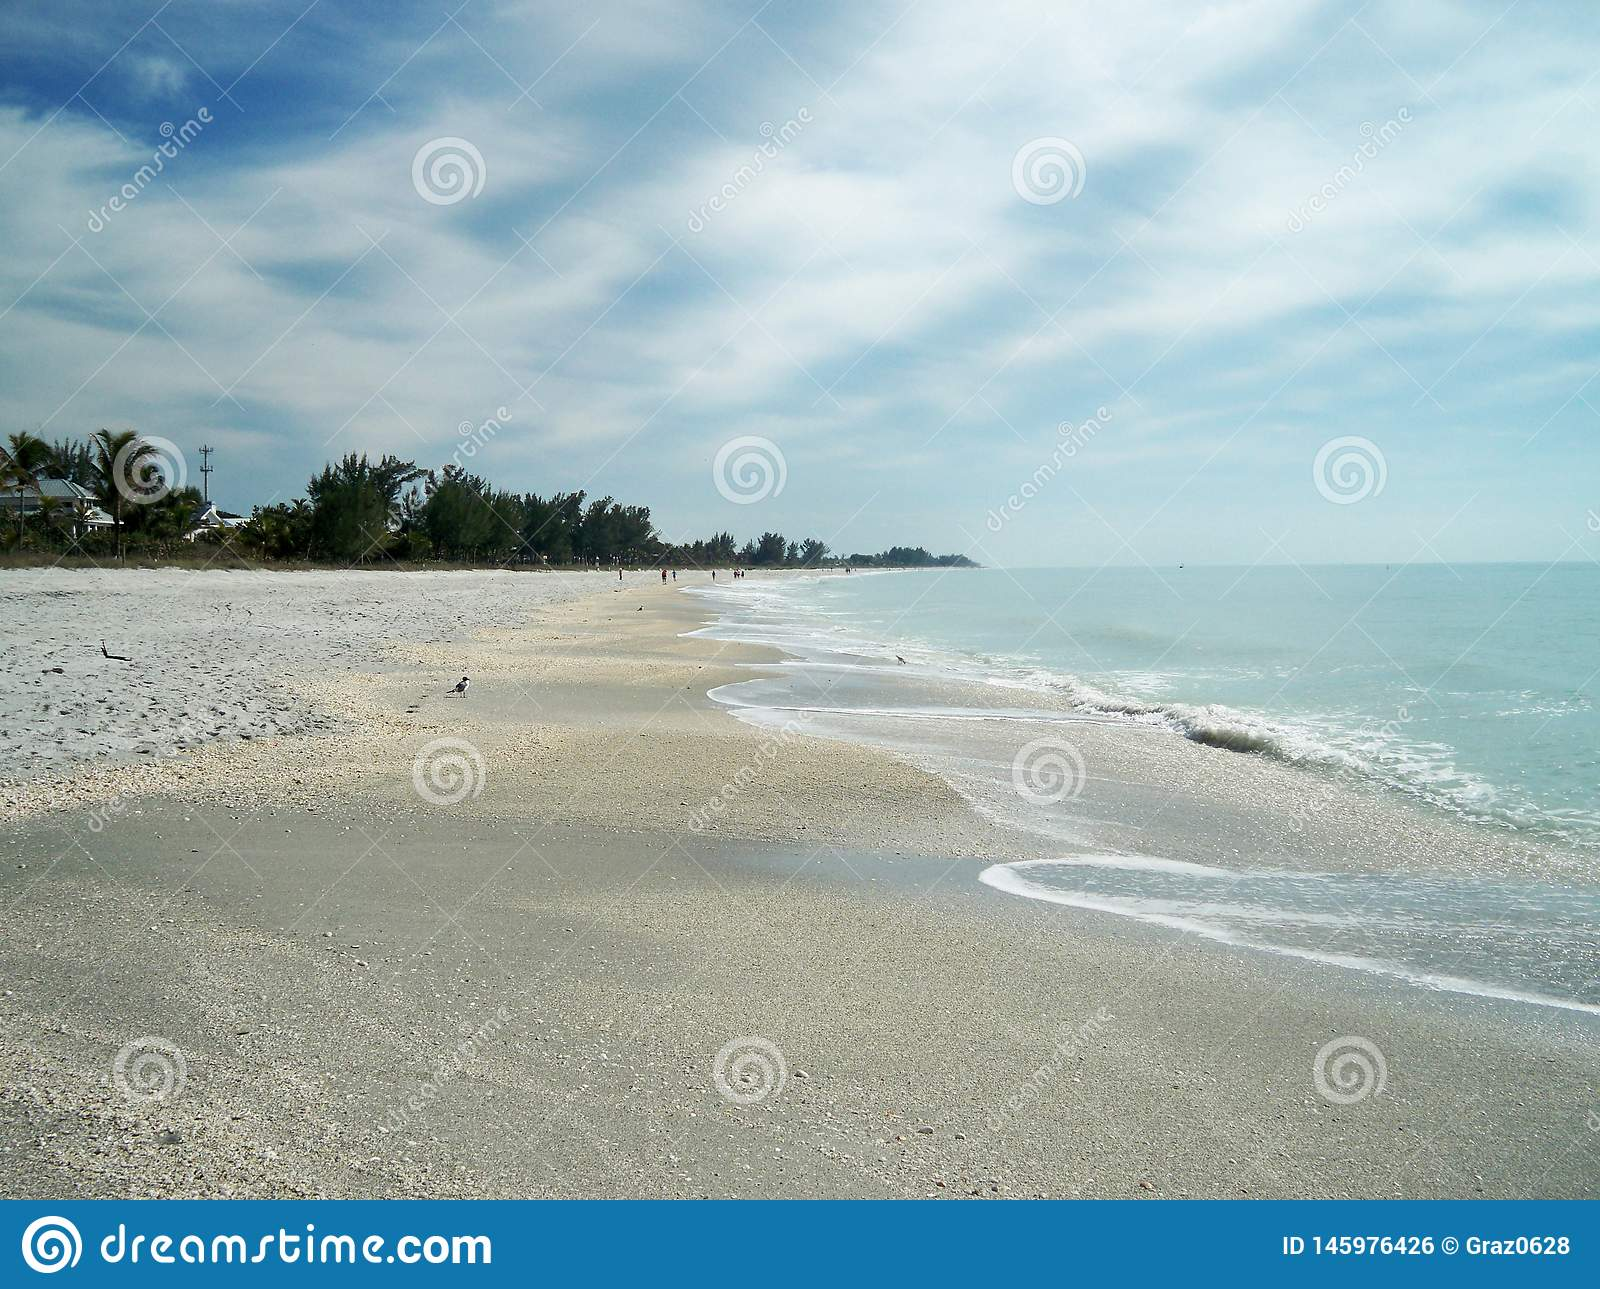 Beach on a sunny day with blue water.